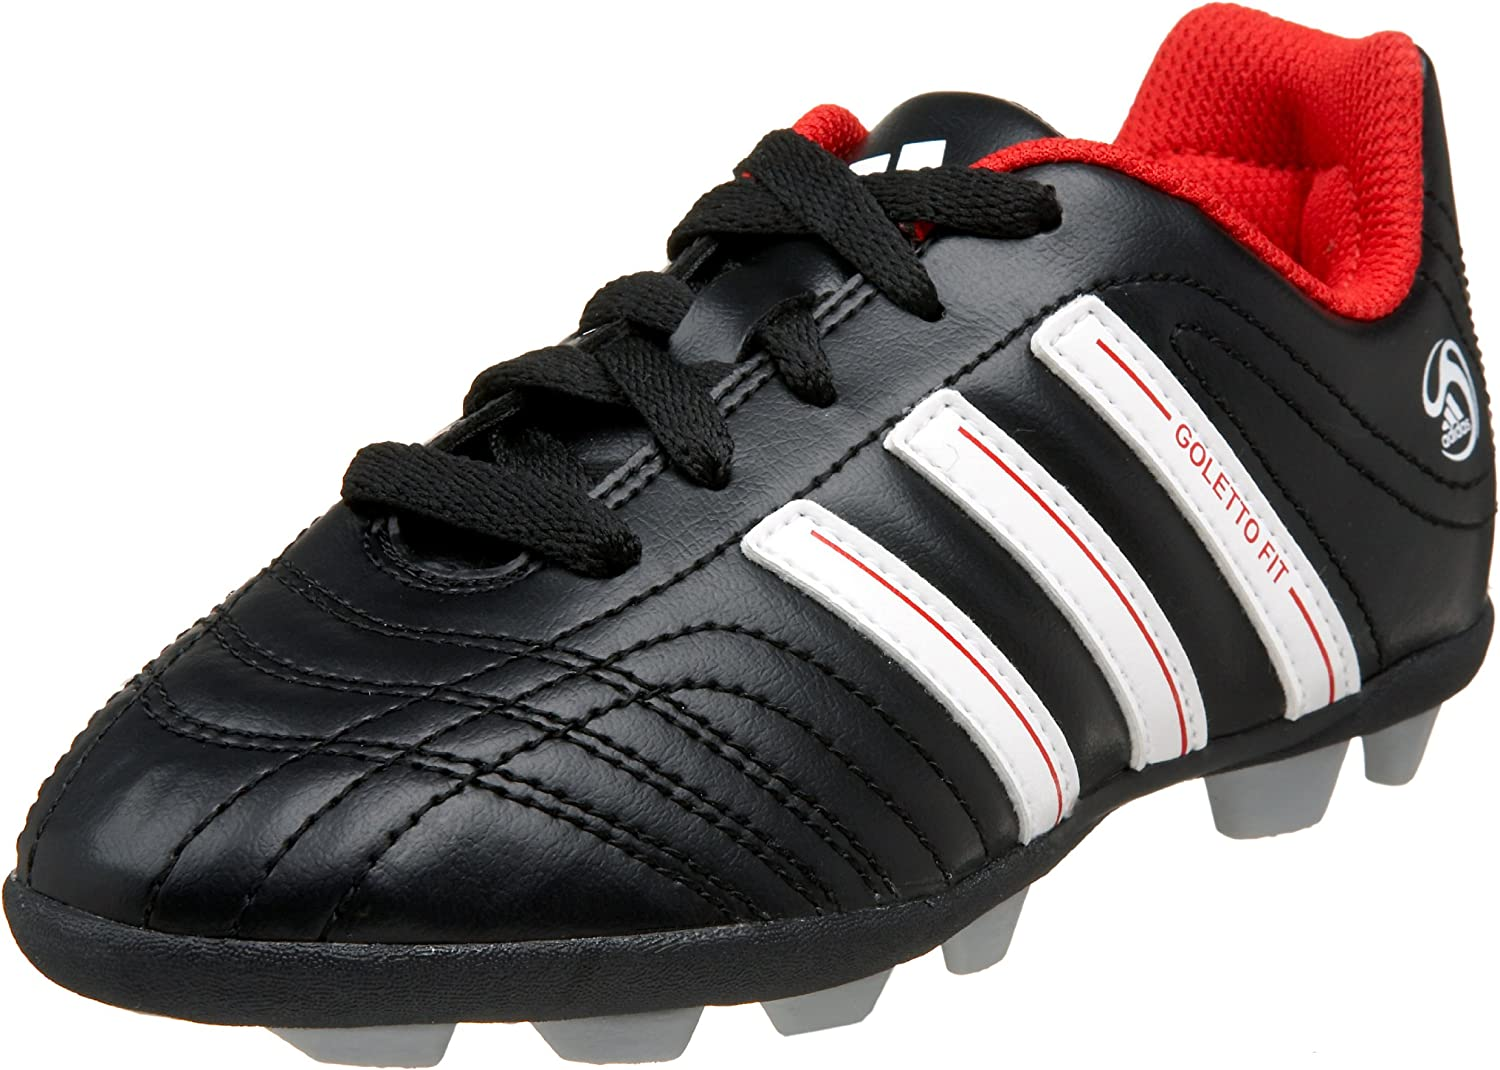 adidas Toddler//Little Kid Goletto Fit TRX HG Soccer Shoe